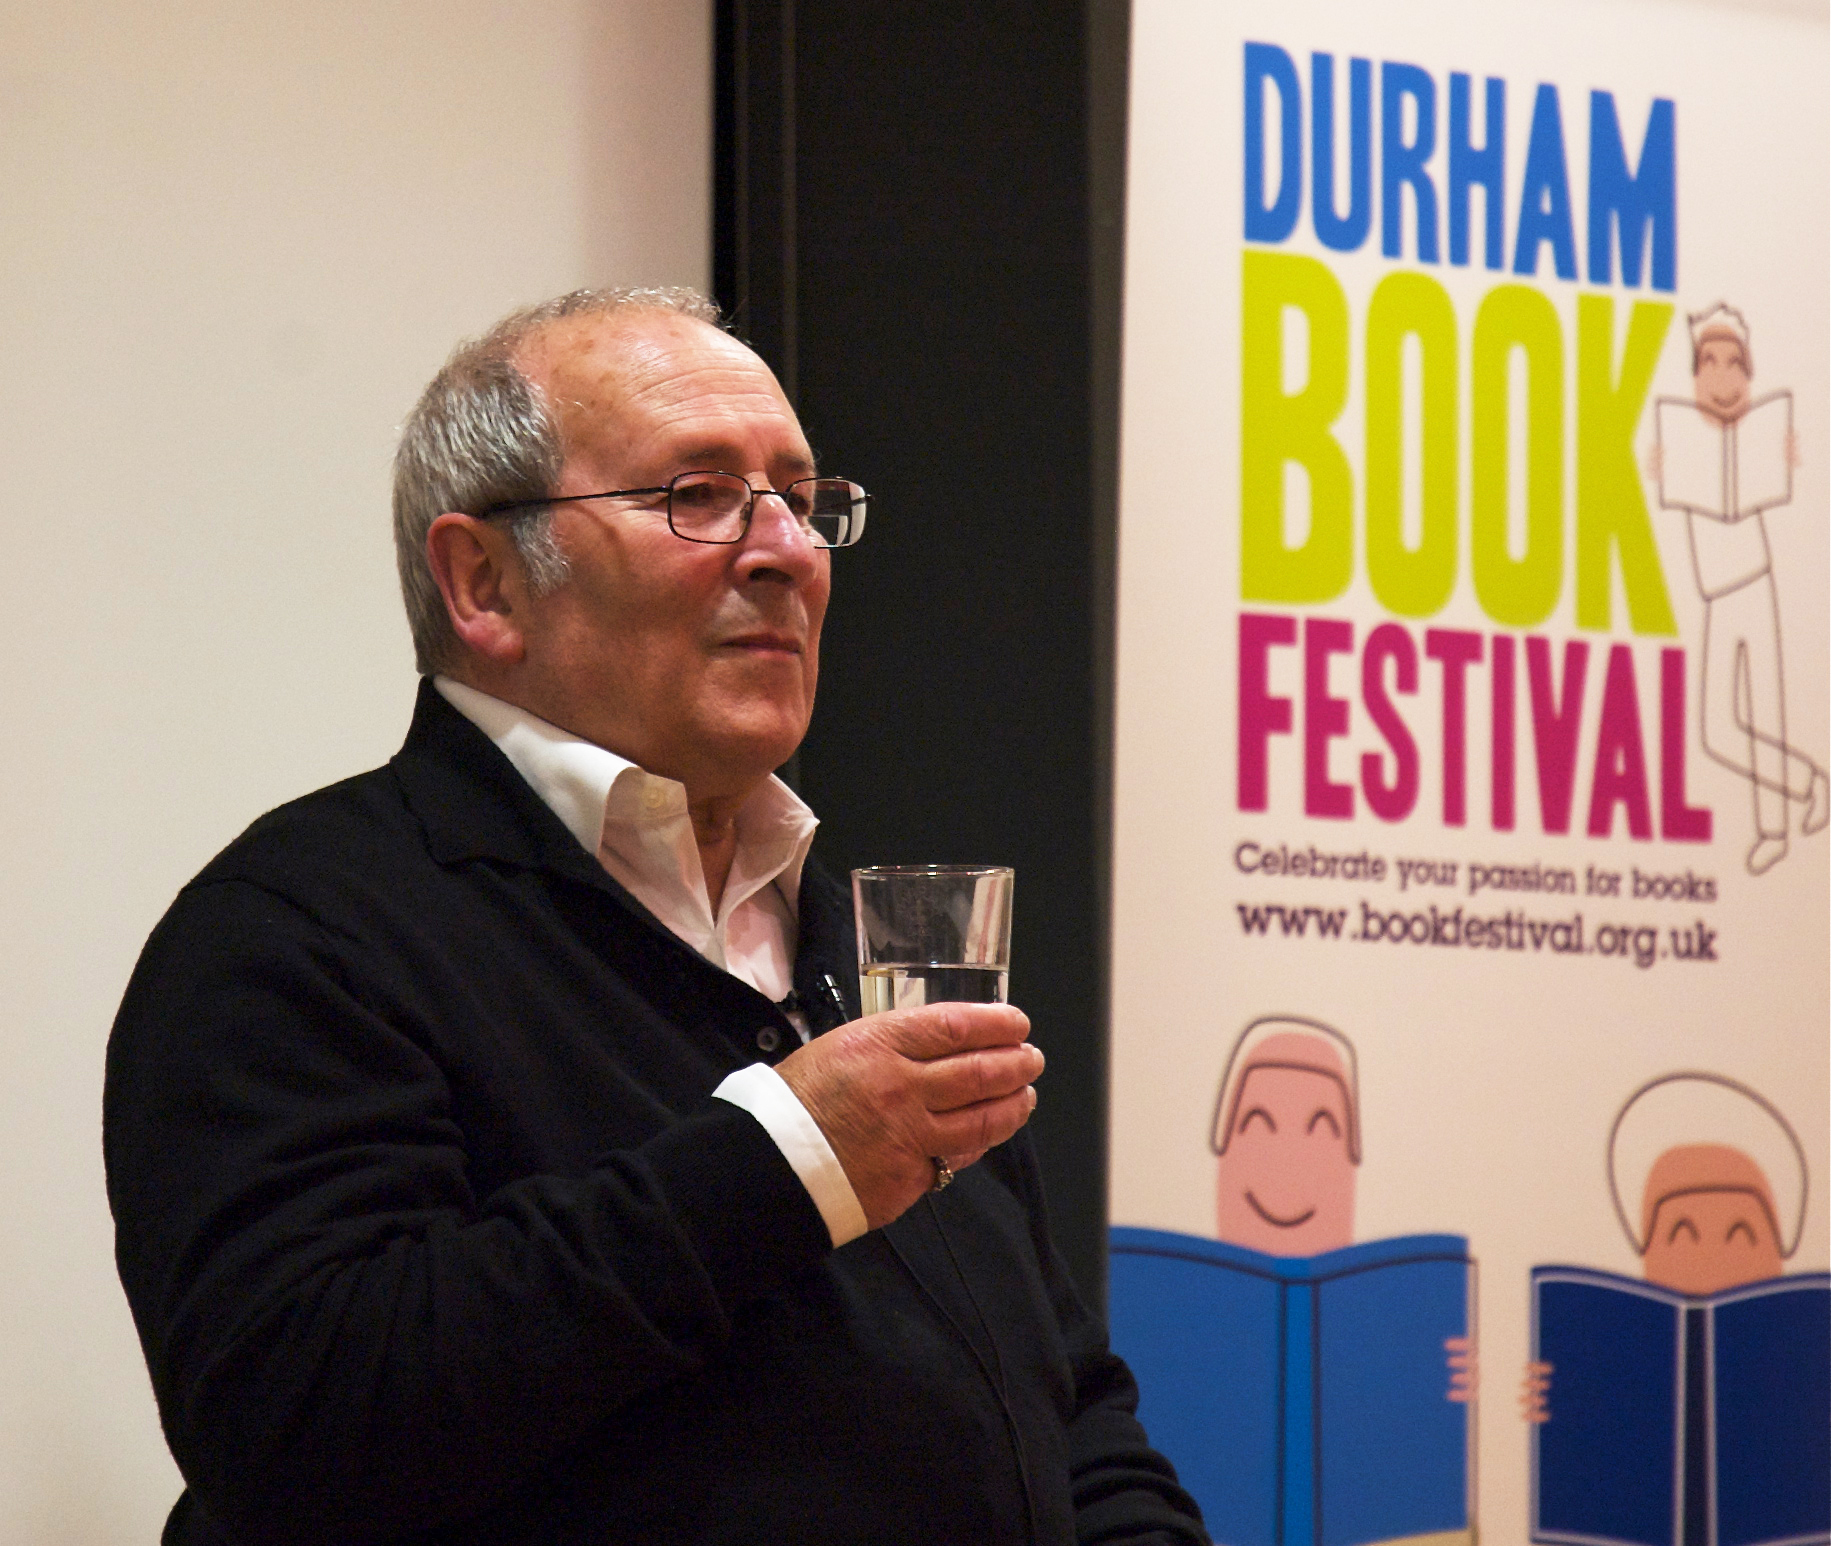 Wesker at the Durham Book Festival in 2008